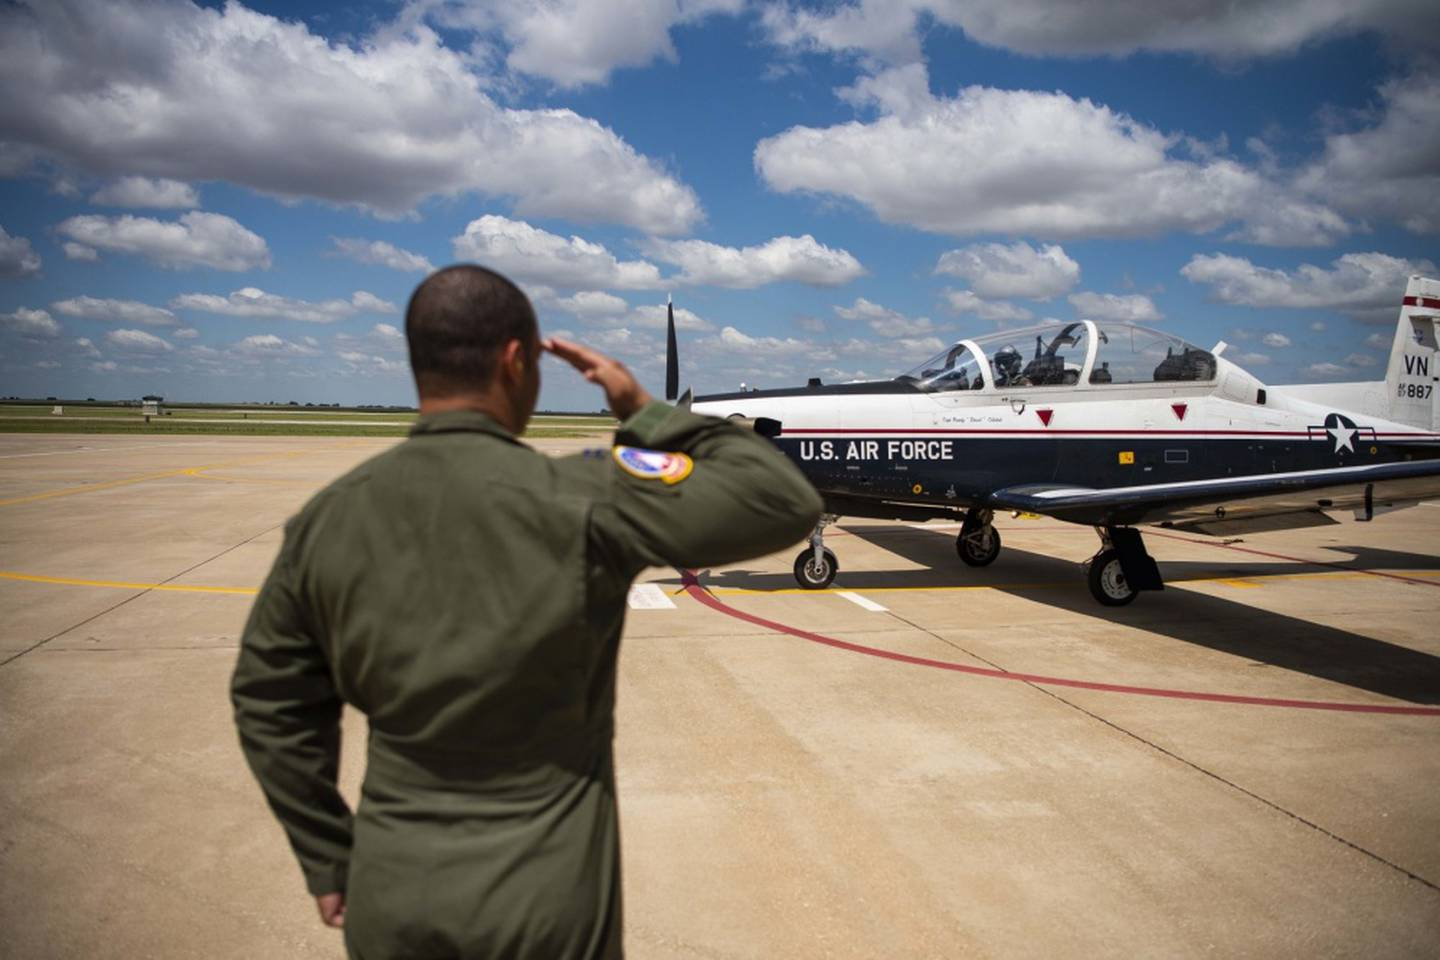 Capt. Marcel Trott, a flight commander assigned to the 71st Student Squadron, salutes 2nd Lt. Corey Persons, a student pilot assigned to the 71st SS, before his solo flight July 15, 2019, at Vance Air Force Base, Oklahoma. (Air Force/SrA Taylor Crul)